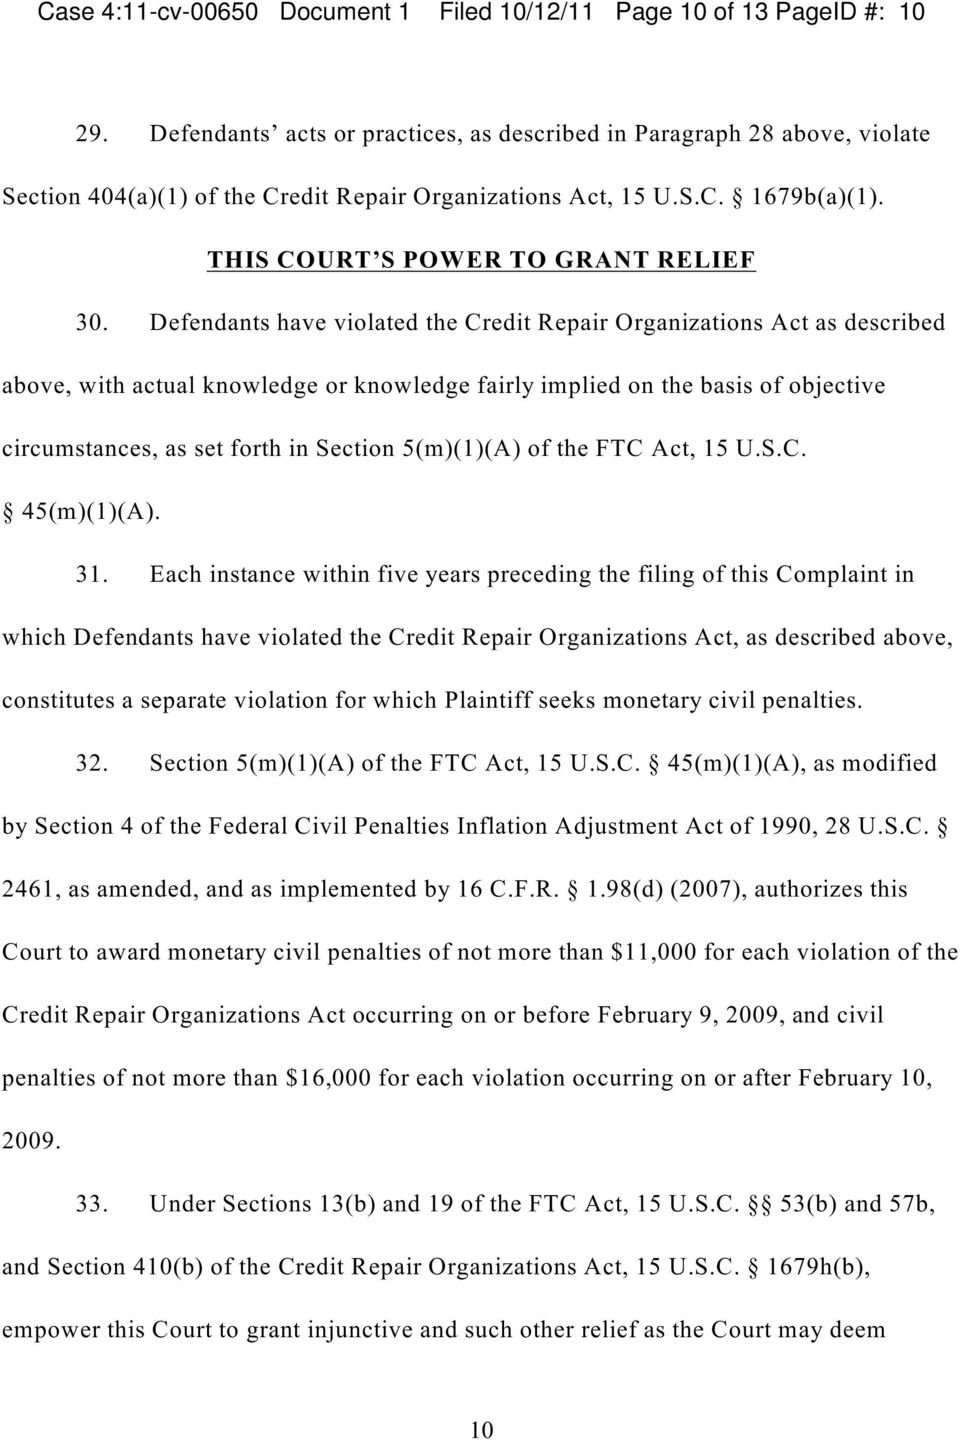 Defendants have violated the Credit Repair Organizations Act as described above, with actual knowledge or knowledge fairly implied on the basis of objective circumstances, as set forth in Section